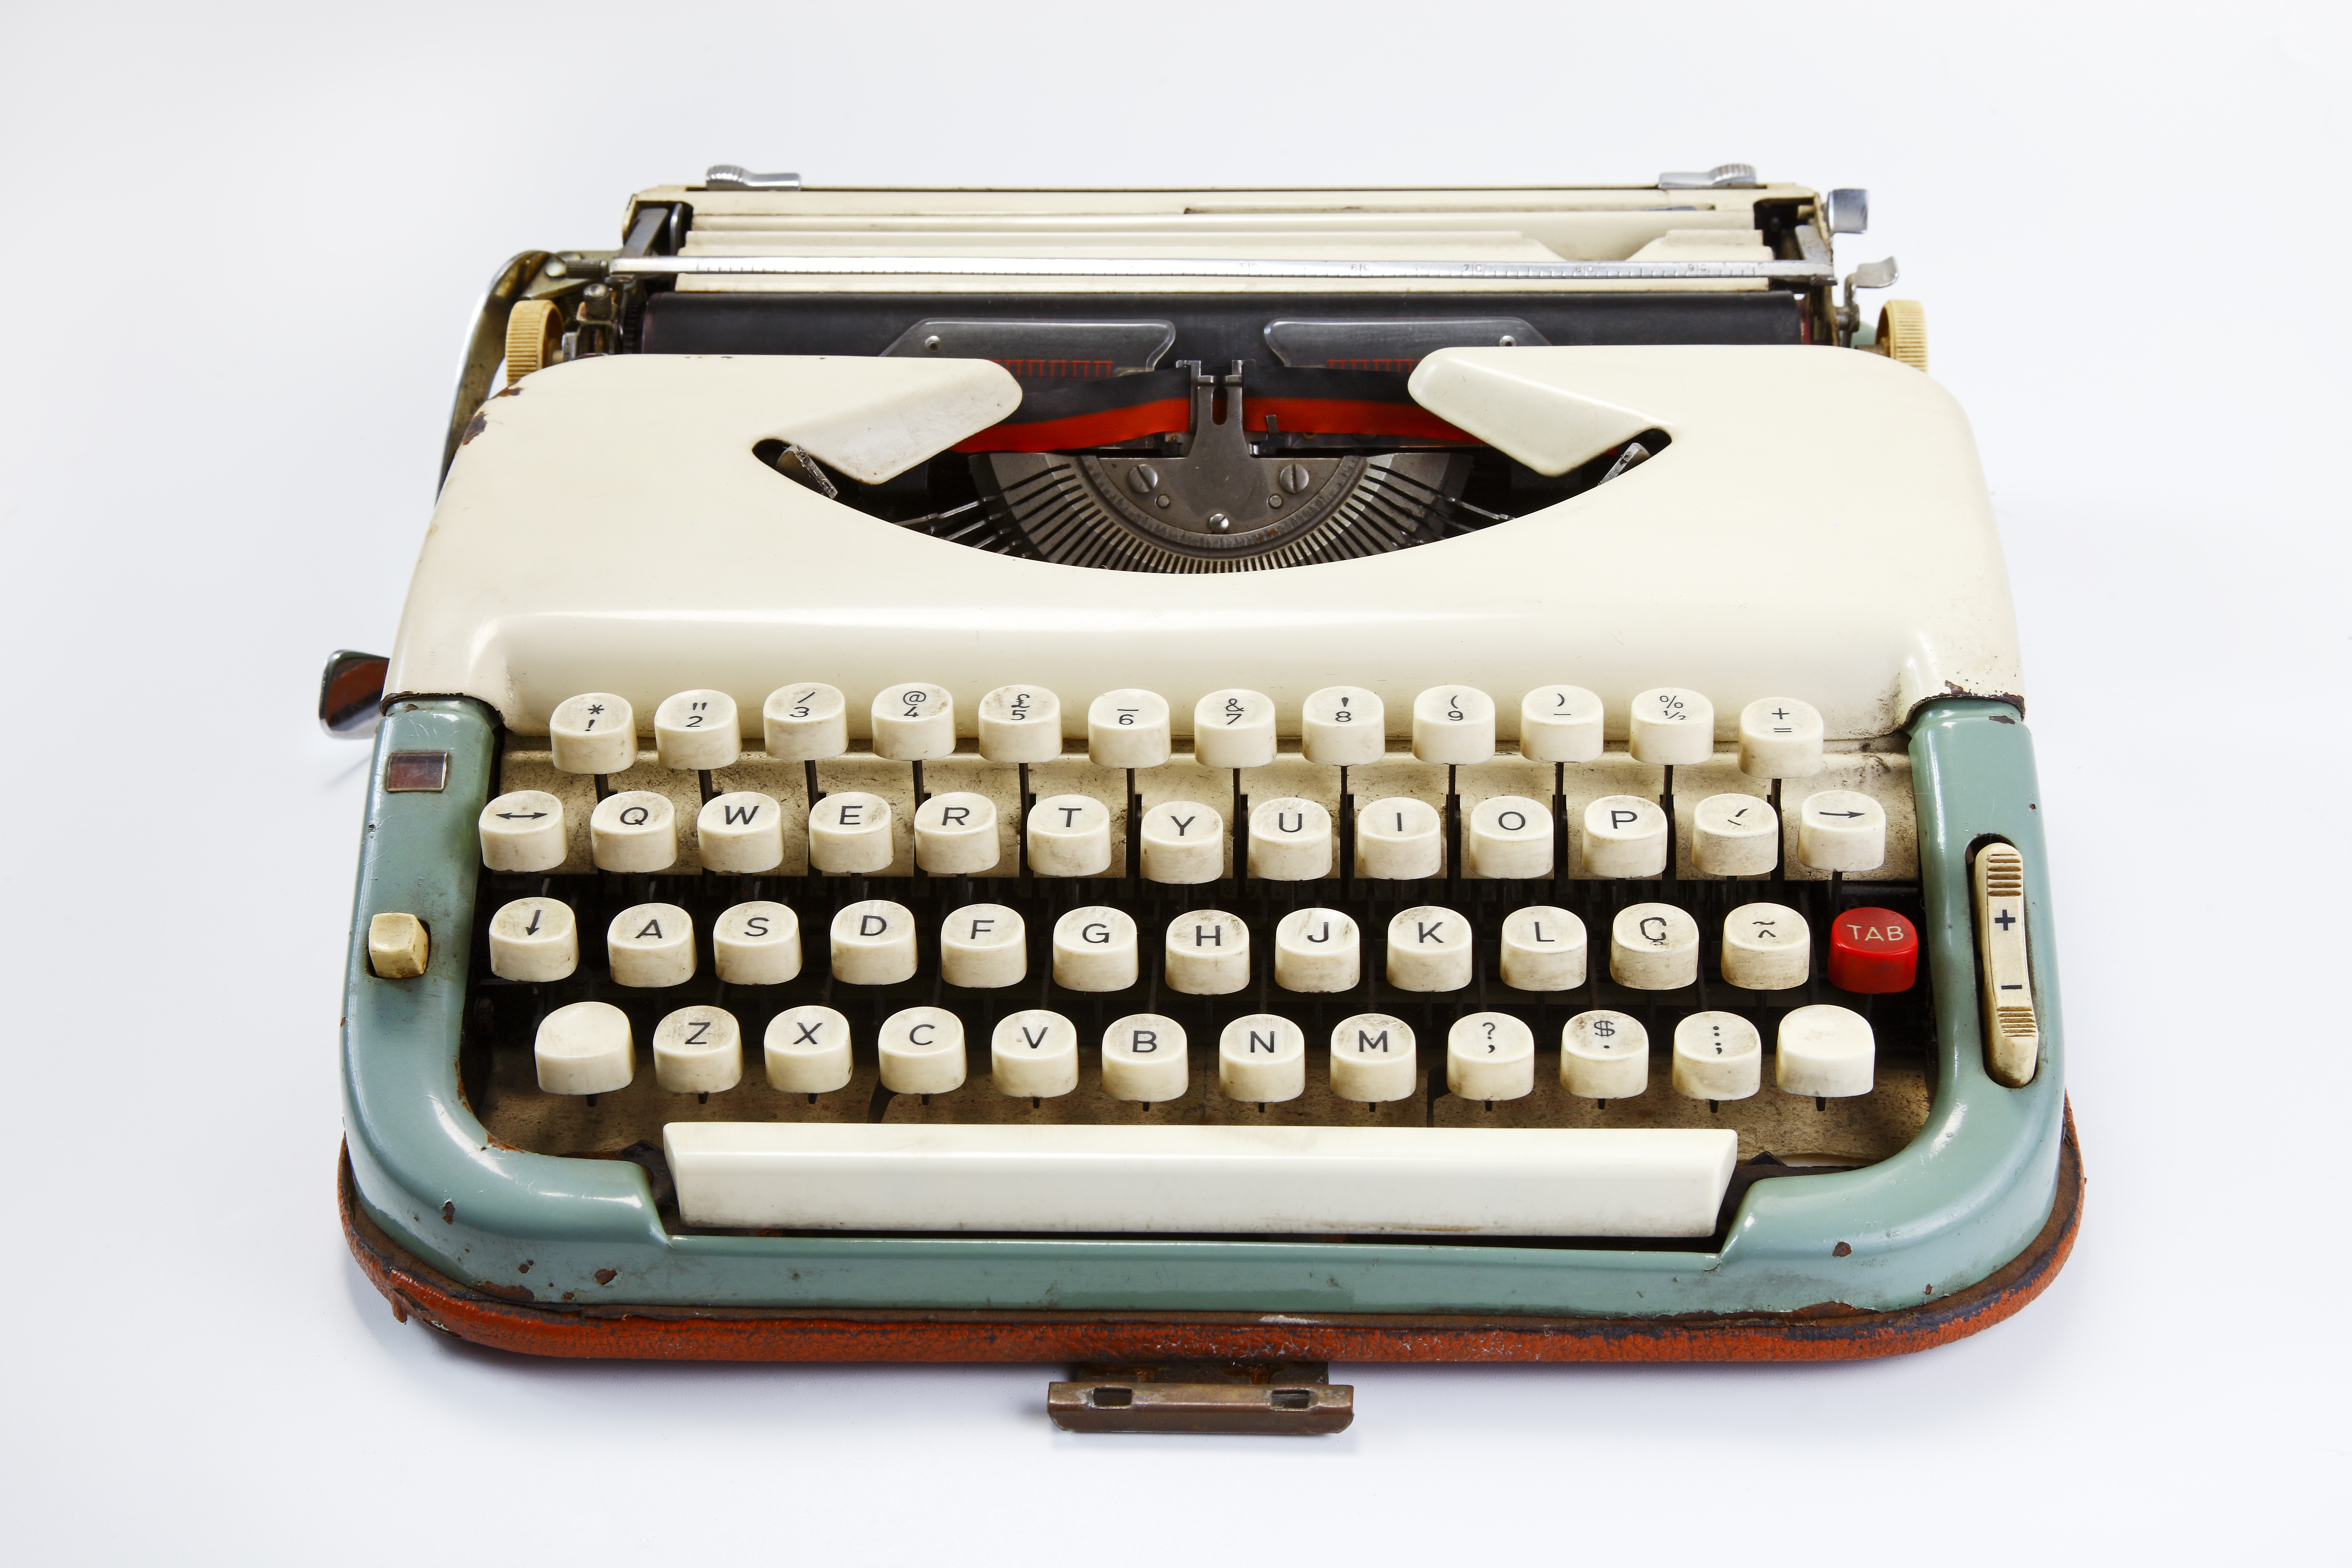 Old Typewriter | Free Images at Clker.com - vector clip ...